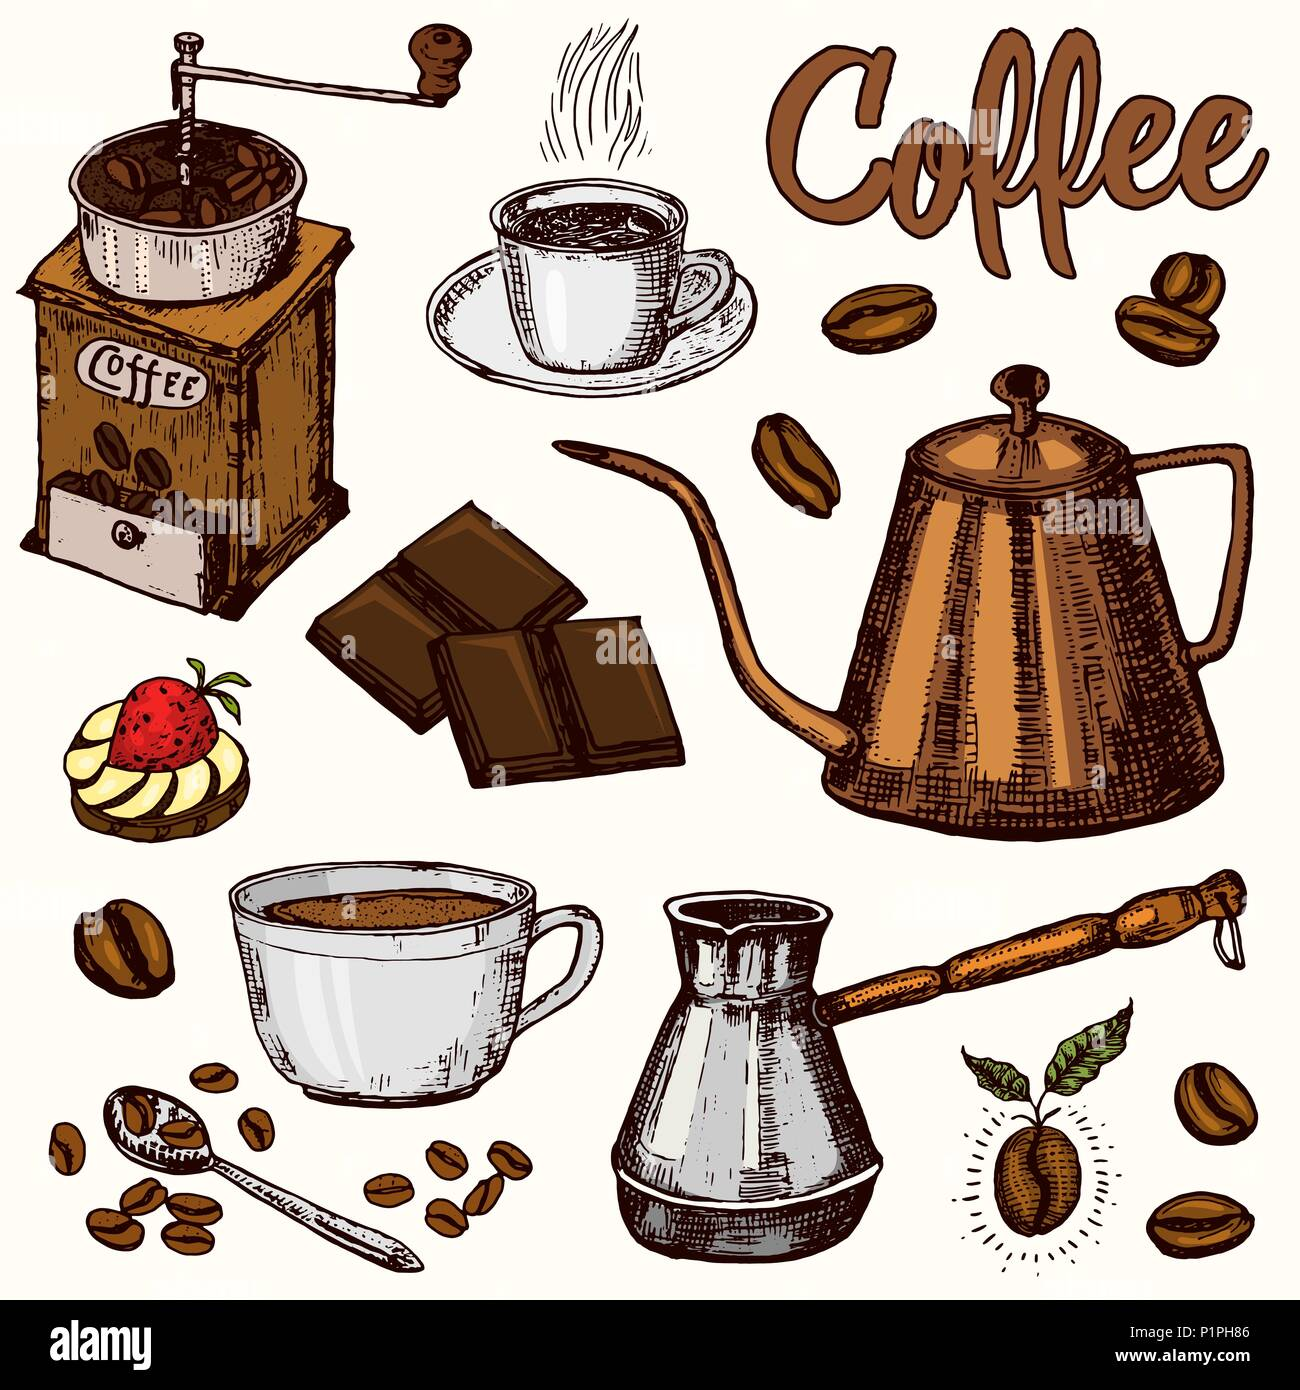 Traditional Filter Coffee Maker Modern Vintage Elements Percolator Plants Grain And Kettle For The Shop Menu Vector Illustration Engraved Hand Drawn In Old Sketch For Card Badges Labels Stock Vector Image